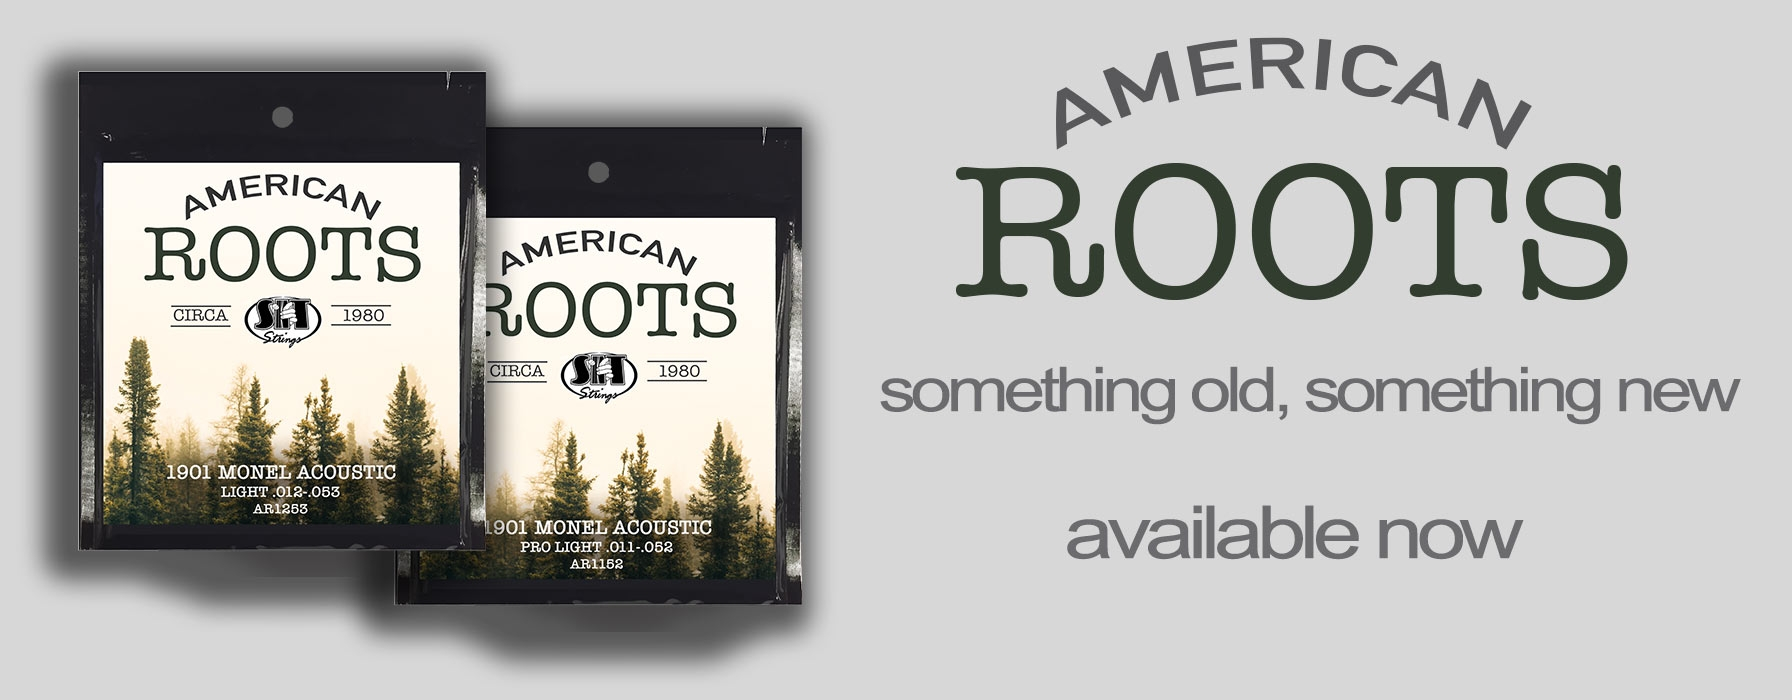 American Roots Monel Acoustic